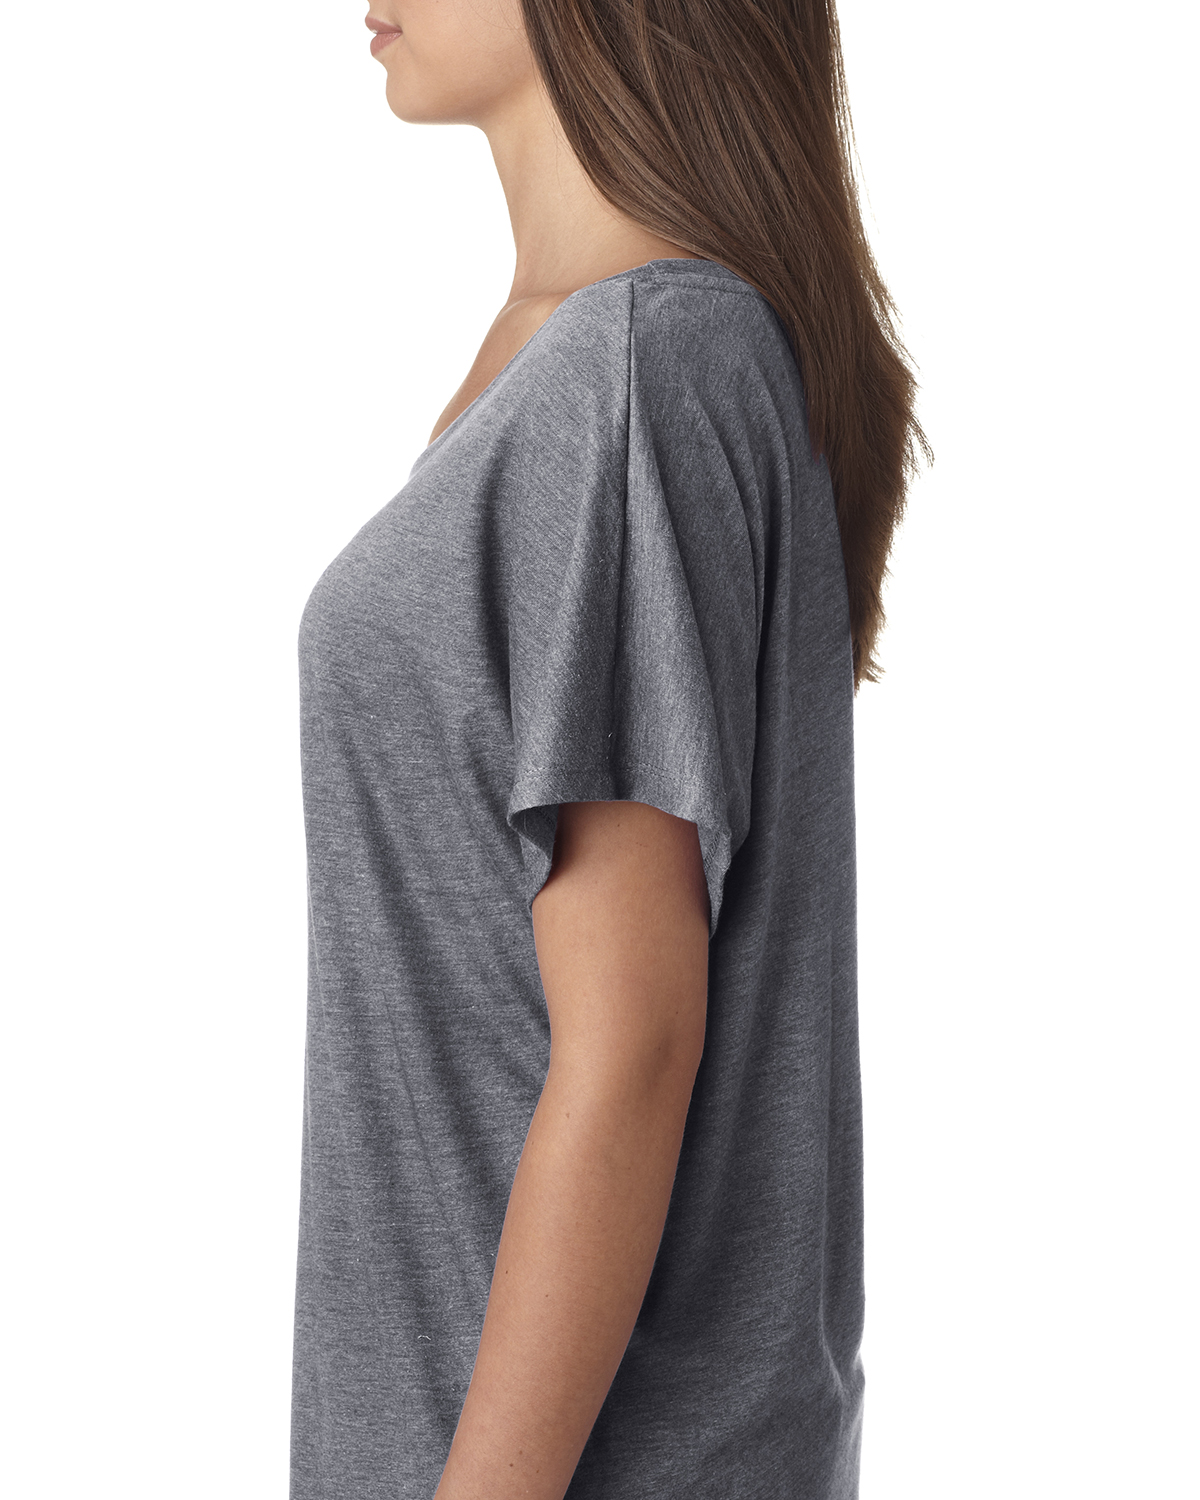 NEW-Next-Level-Junior-Fit-Triblend-Dolman-Sleeve-Relexed-Fit-T-Shirt-B-6760 thumbnail 16